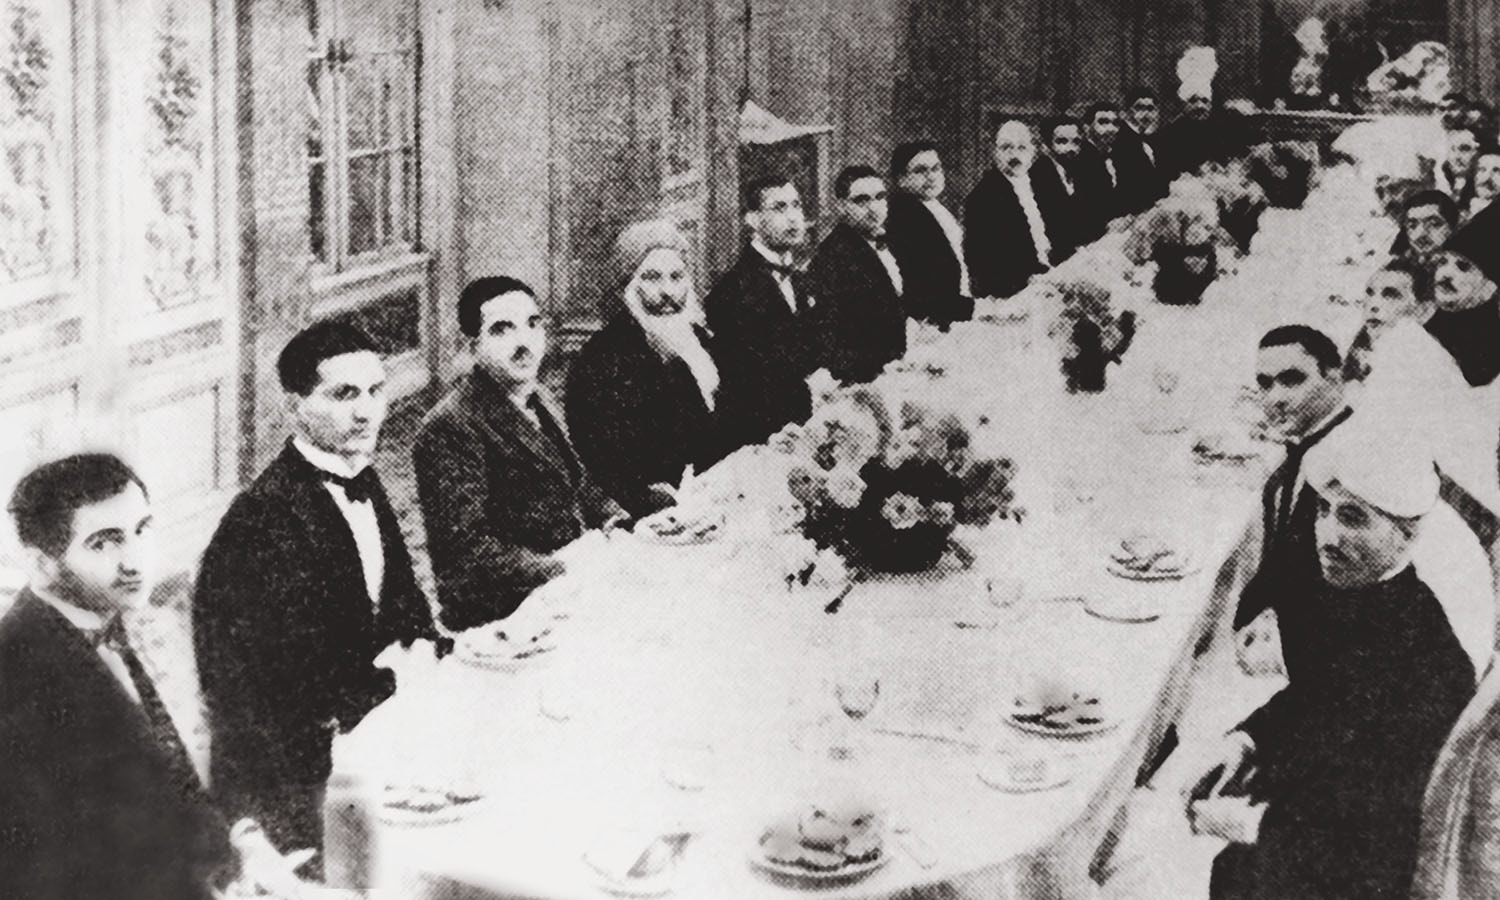 Allama Iqbal (centre; right in his characteristic headgear) sitting alongside Quaid-i-Azam Mohammad Ali Jinnah at the Round Table Conference in London (above).   Photo: The Allama Iqbal Collection